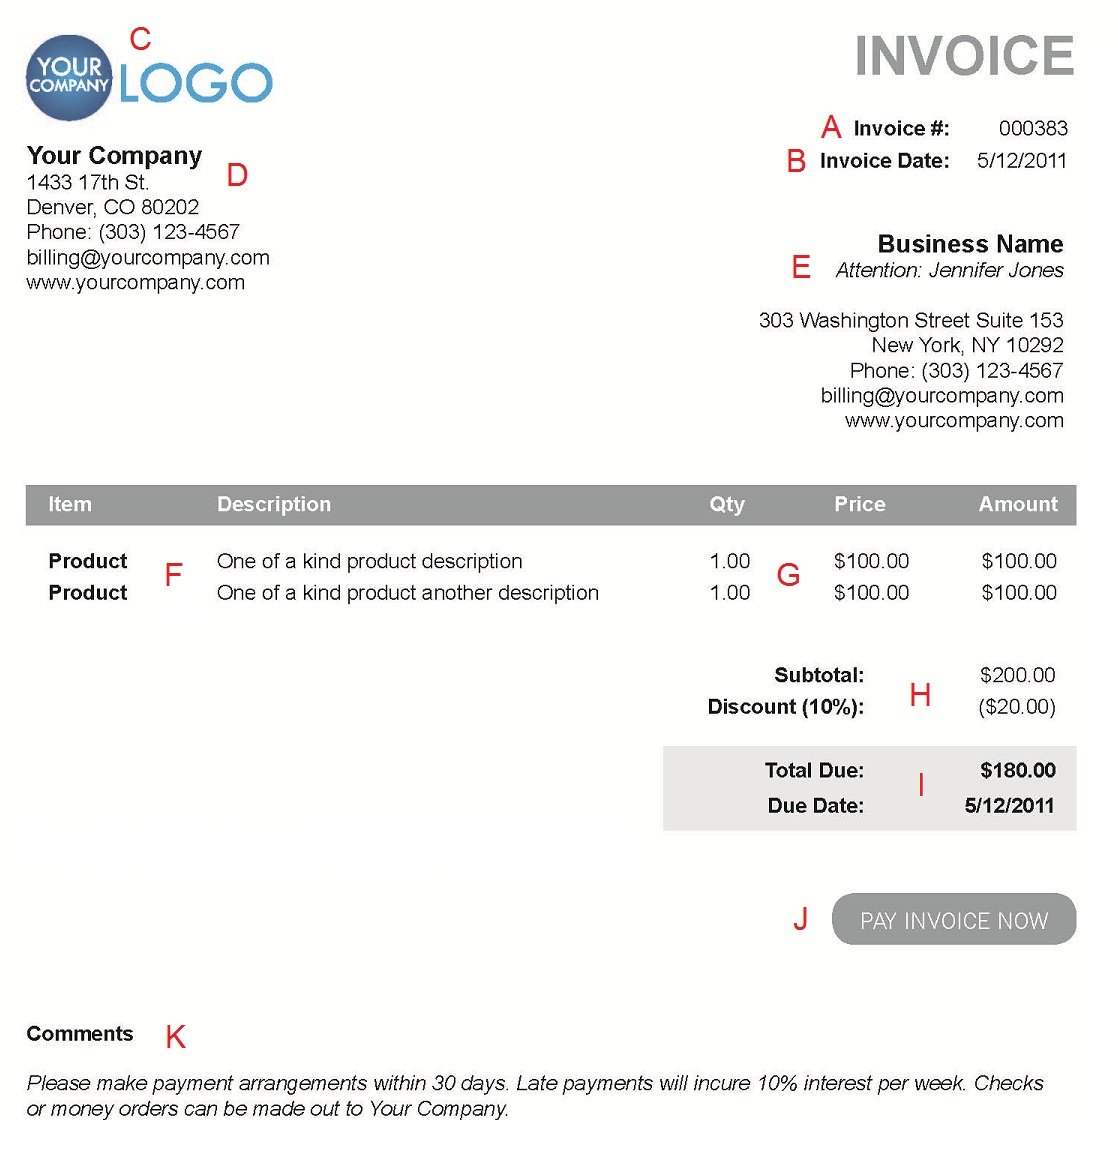 Adoringacklesus  Fascinating The  Different Sections Of An Electronic Payment Invoice With Engaging A  With Beauteous Xero Invoice Template Also Digital Invoices In Addition Invoicing With Quickbooks And Real Estate Invoice As Well As Commercial Invoice For Fedex Additionally Wordpress Invoicing Plugin From Paysimplecom With Adoringacklesus  Engaging The  Different Sections Of An Electronic Payment Invoice With Beauteous A  And Fascinating Xero Invoice Template Also Digital Invoices In Addition Invoicing With Quickbooks From Paysimplecom